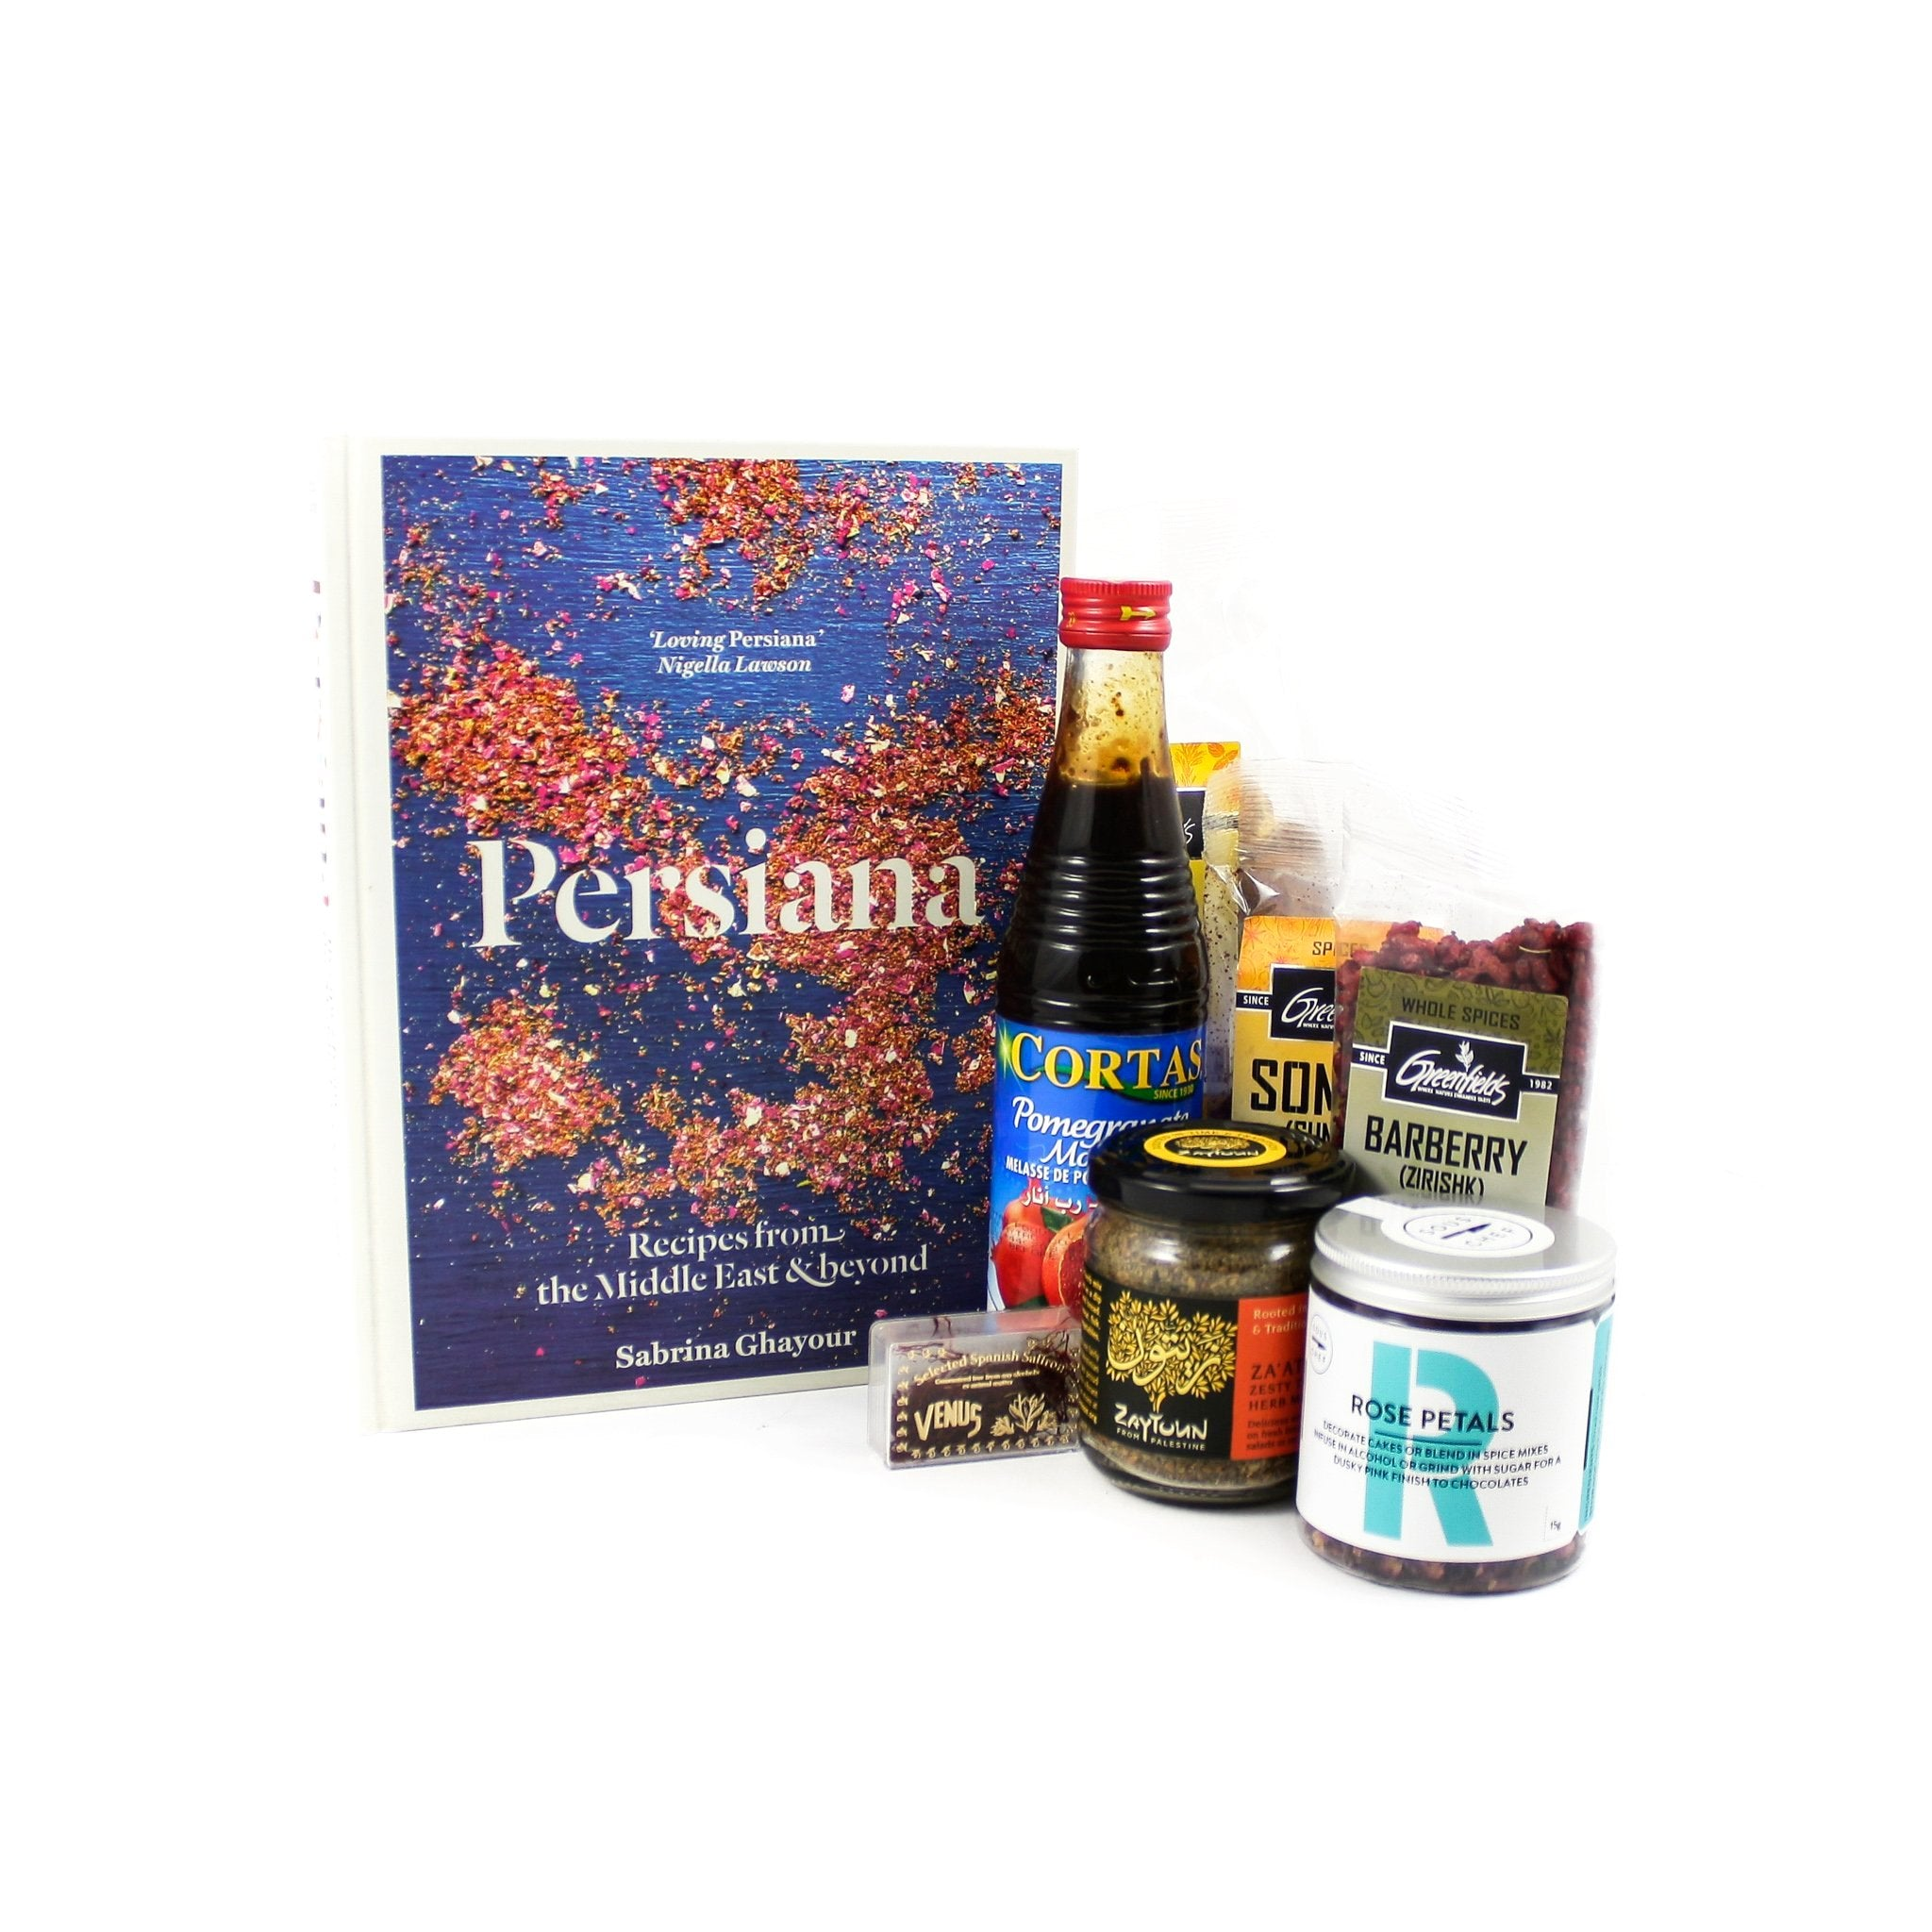 Sous Chef Kit Persiana Cookbook Set Gifts Cookbook & Ingredients Sets